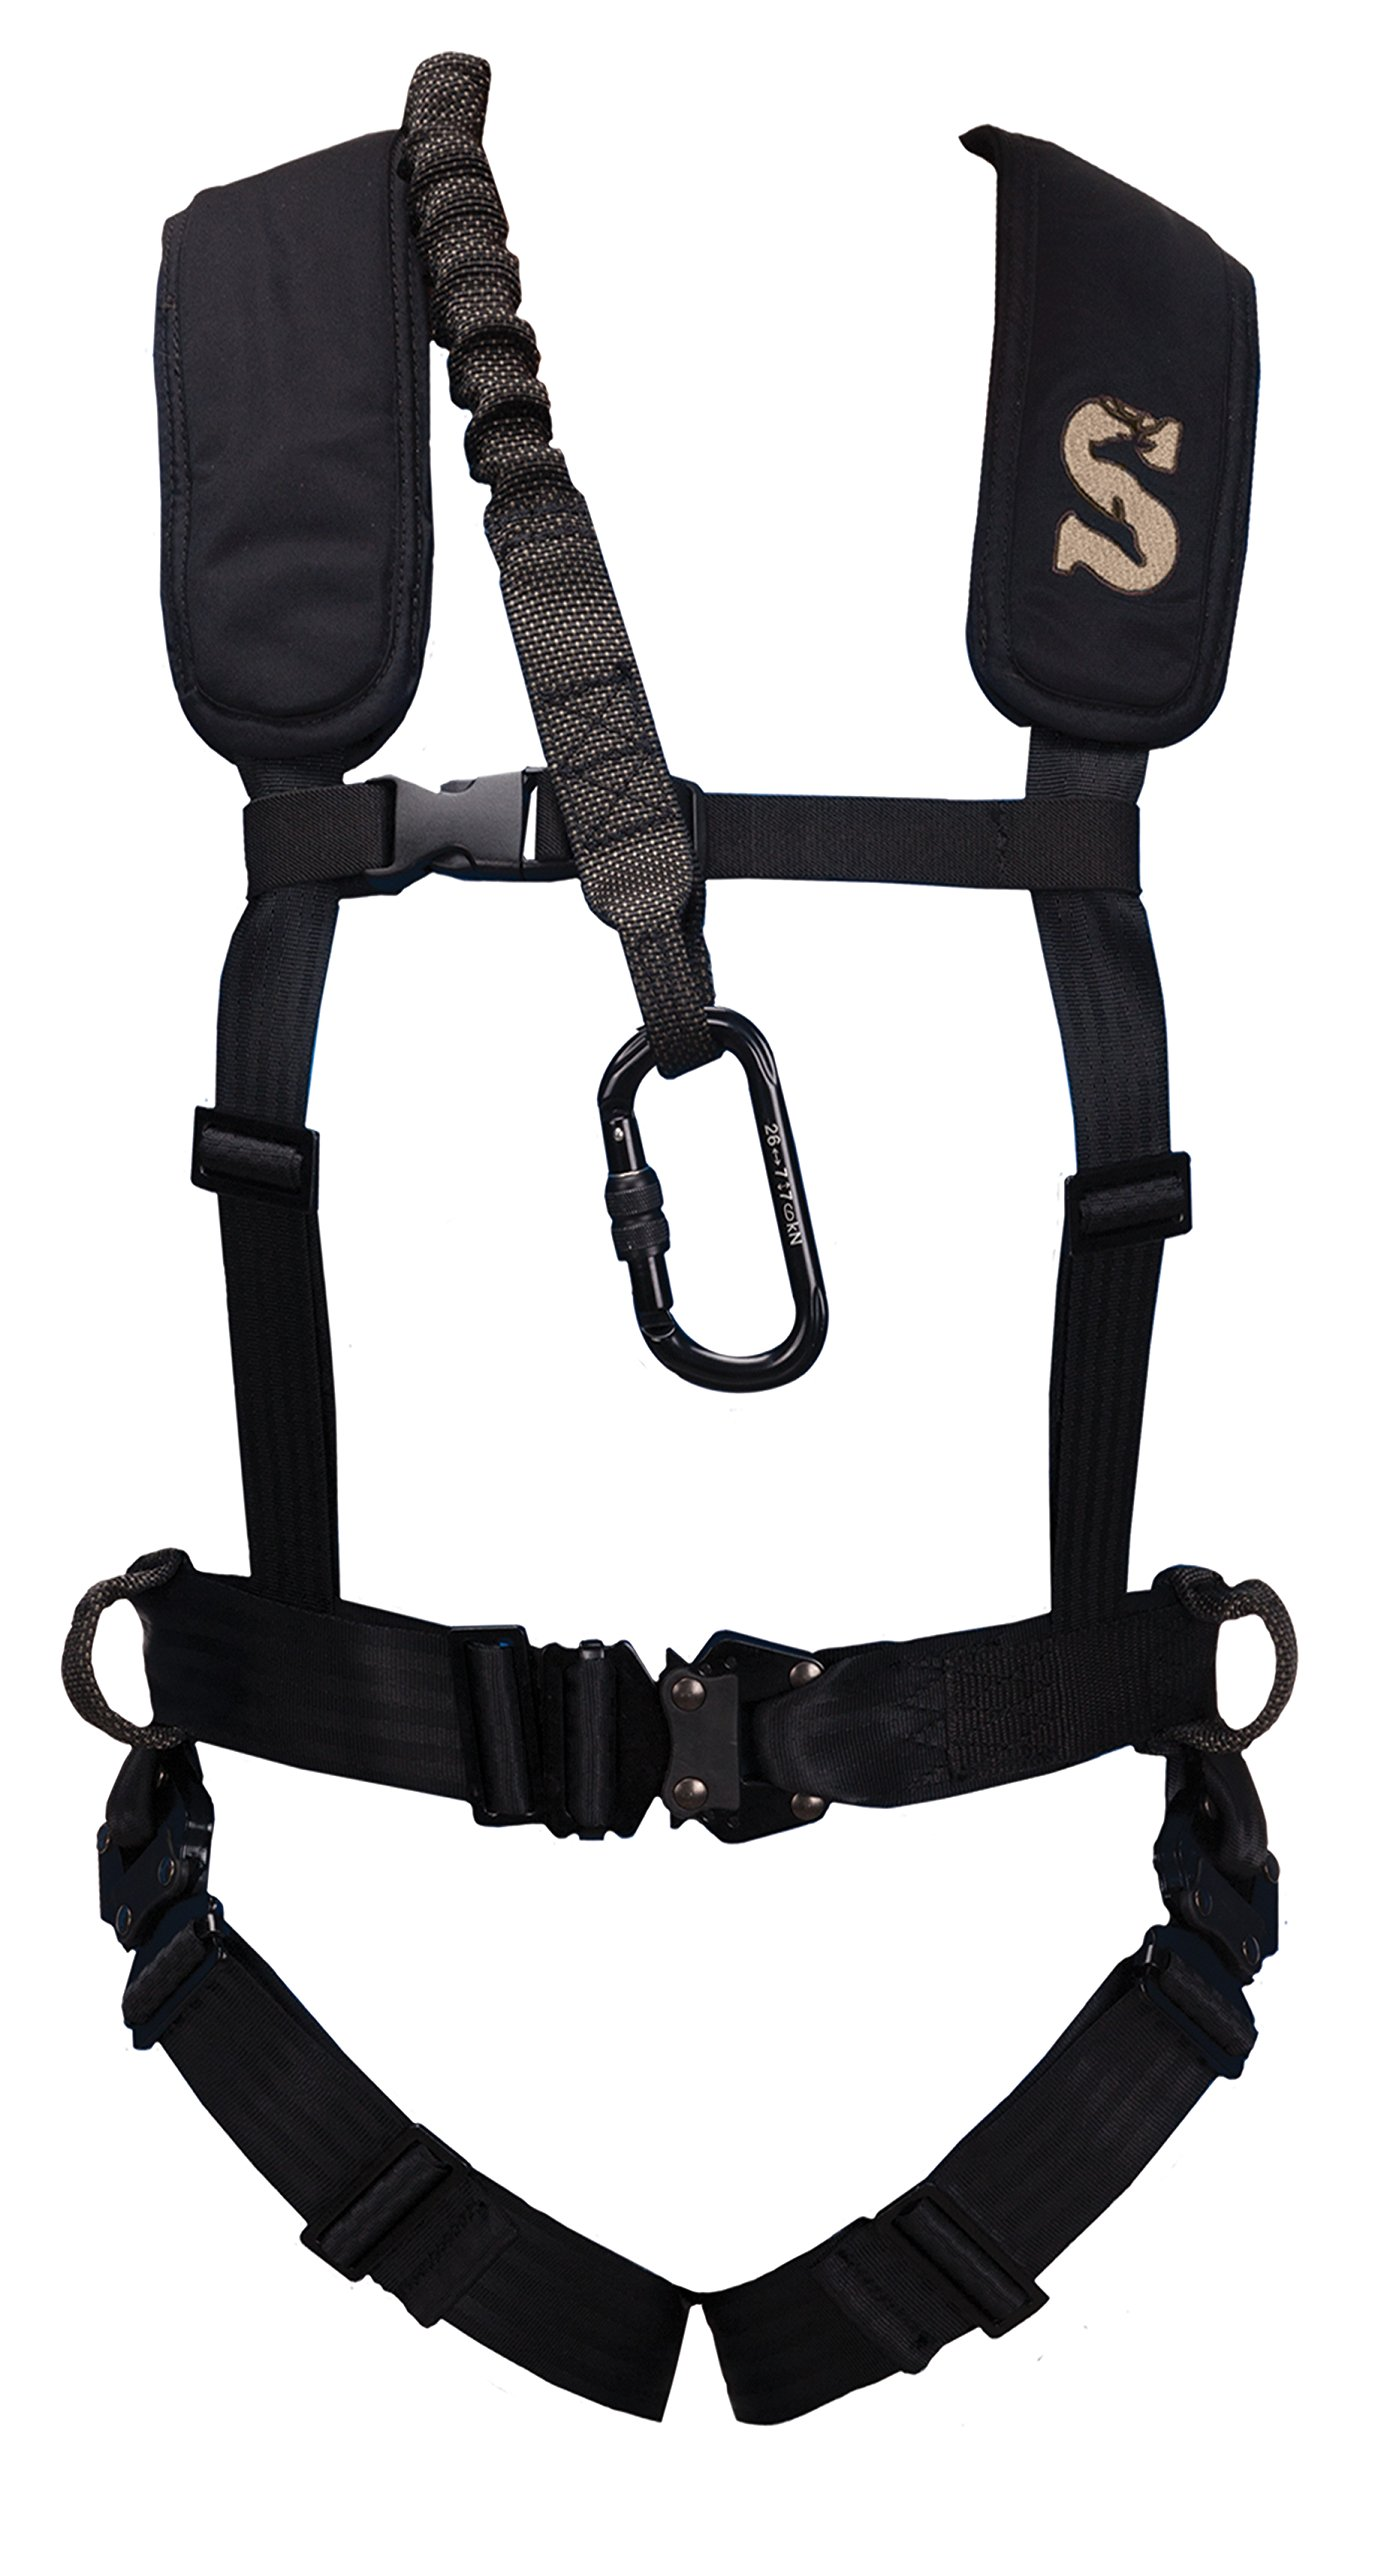 Summit Treestands Men's Sport Safety Harness, Small